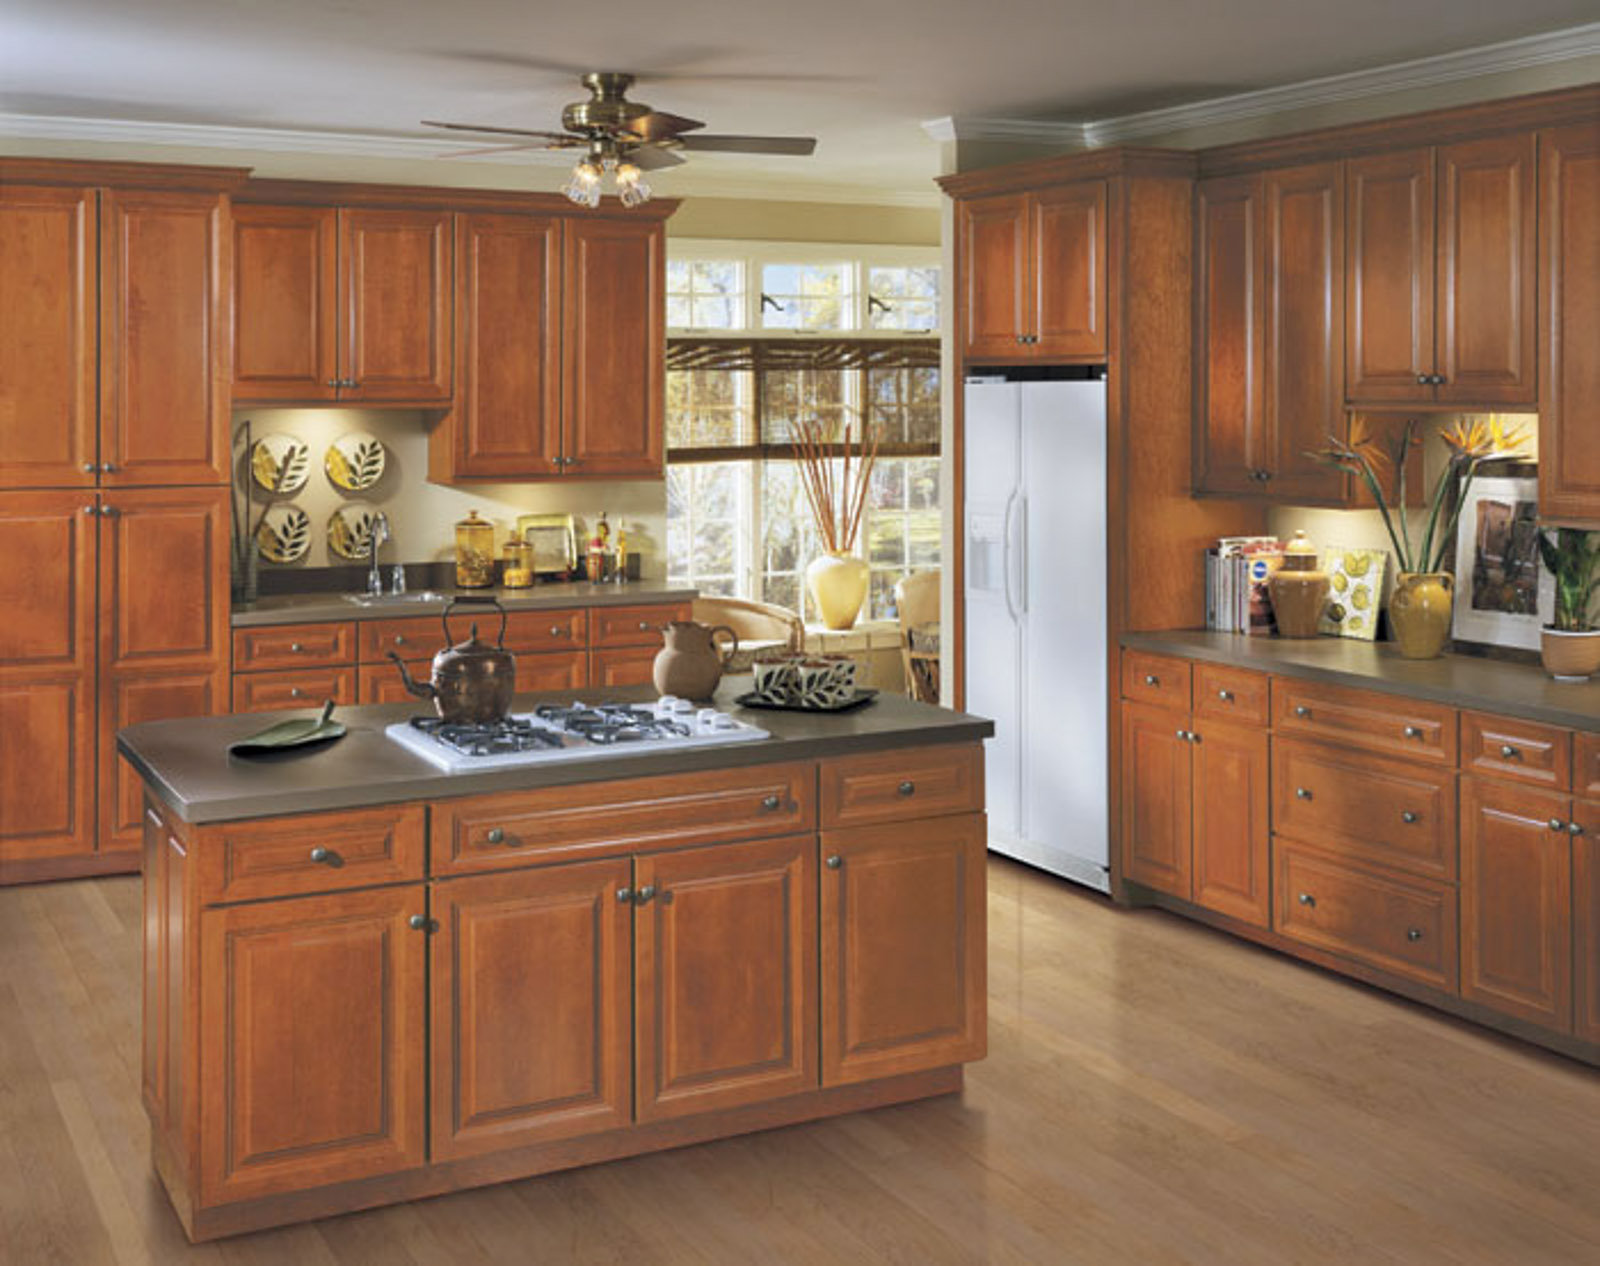 kitchen cabinets set island with oven 3 steps to choosing the right express kitchens tone for whole